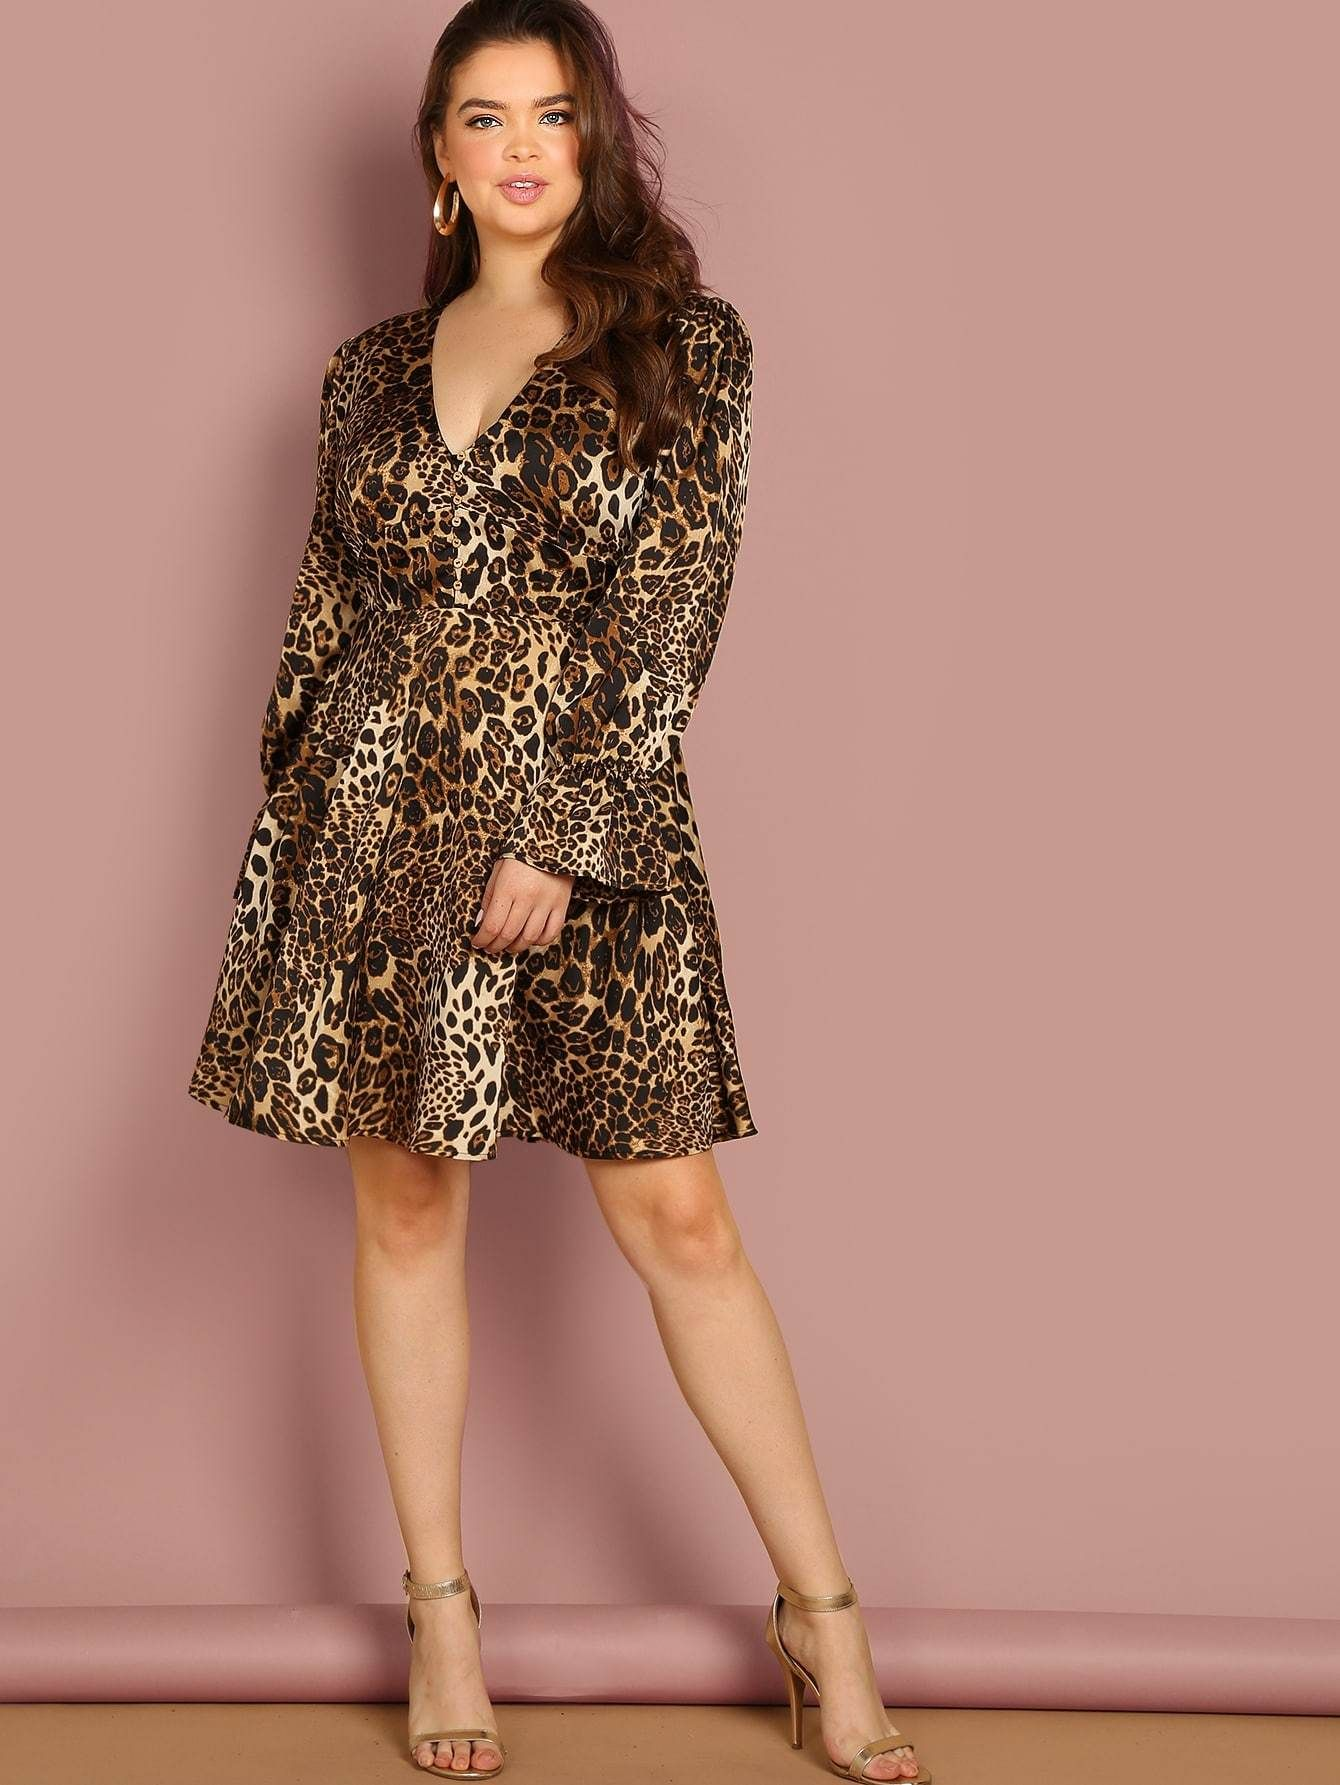 cb67574b0c1 Color  Multicolor Material  Polyester Neckline  V neck Sleeve  Long Sleeve  Dresses  Knee Length Silhouette  Fit and Flare Pattern  Leopard Style   Casual ...